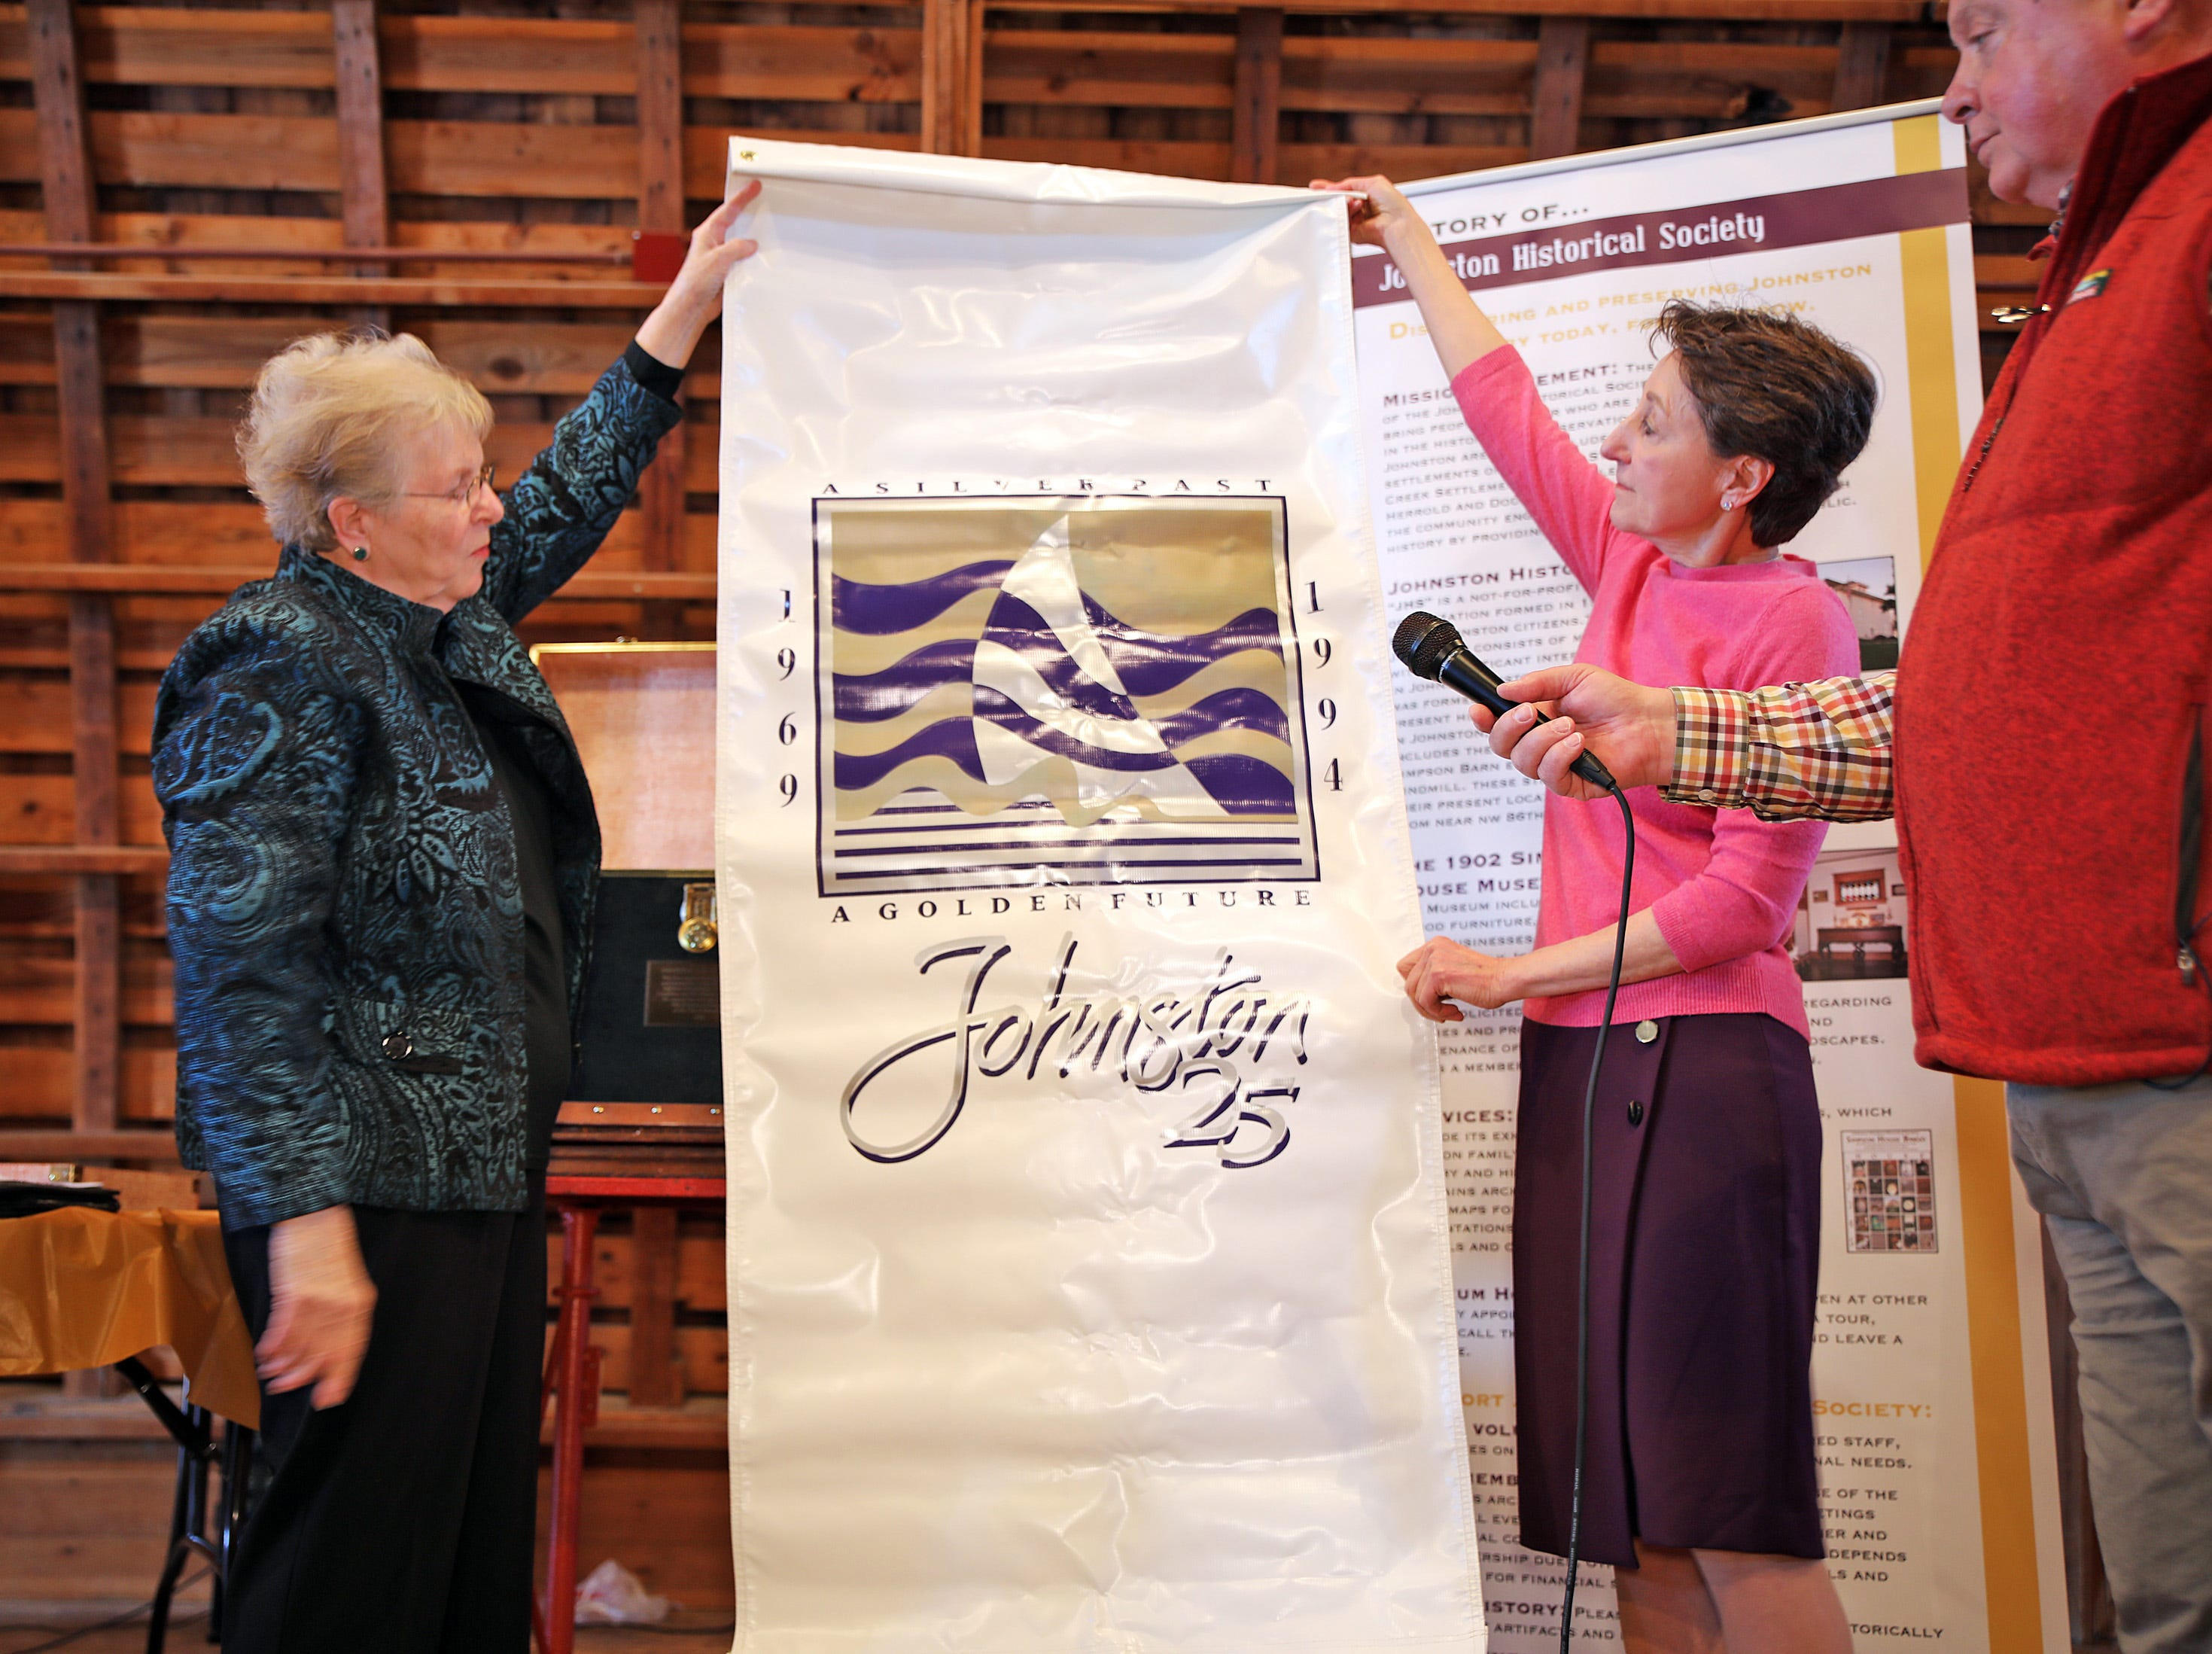 Past President of the Johnston Historical Society Mary Jane Paez and Johnston Mayor Paula Dierenfeld unveil a promotional banner from 1994 during the opening of the 25-year old time capsule from 1994 as the city of Johnston celebrates its 50th anniversary at the Simpson House and Barn Museum at 6161 Northglenn Drive on Sunday, March 10, 2019, in Johnston. The city was incorporated in 1969 with 2,236 residents and 50 years later, over 21,000 residents call Johnston home.